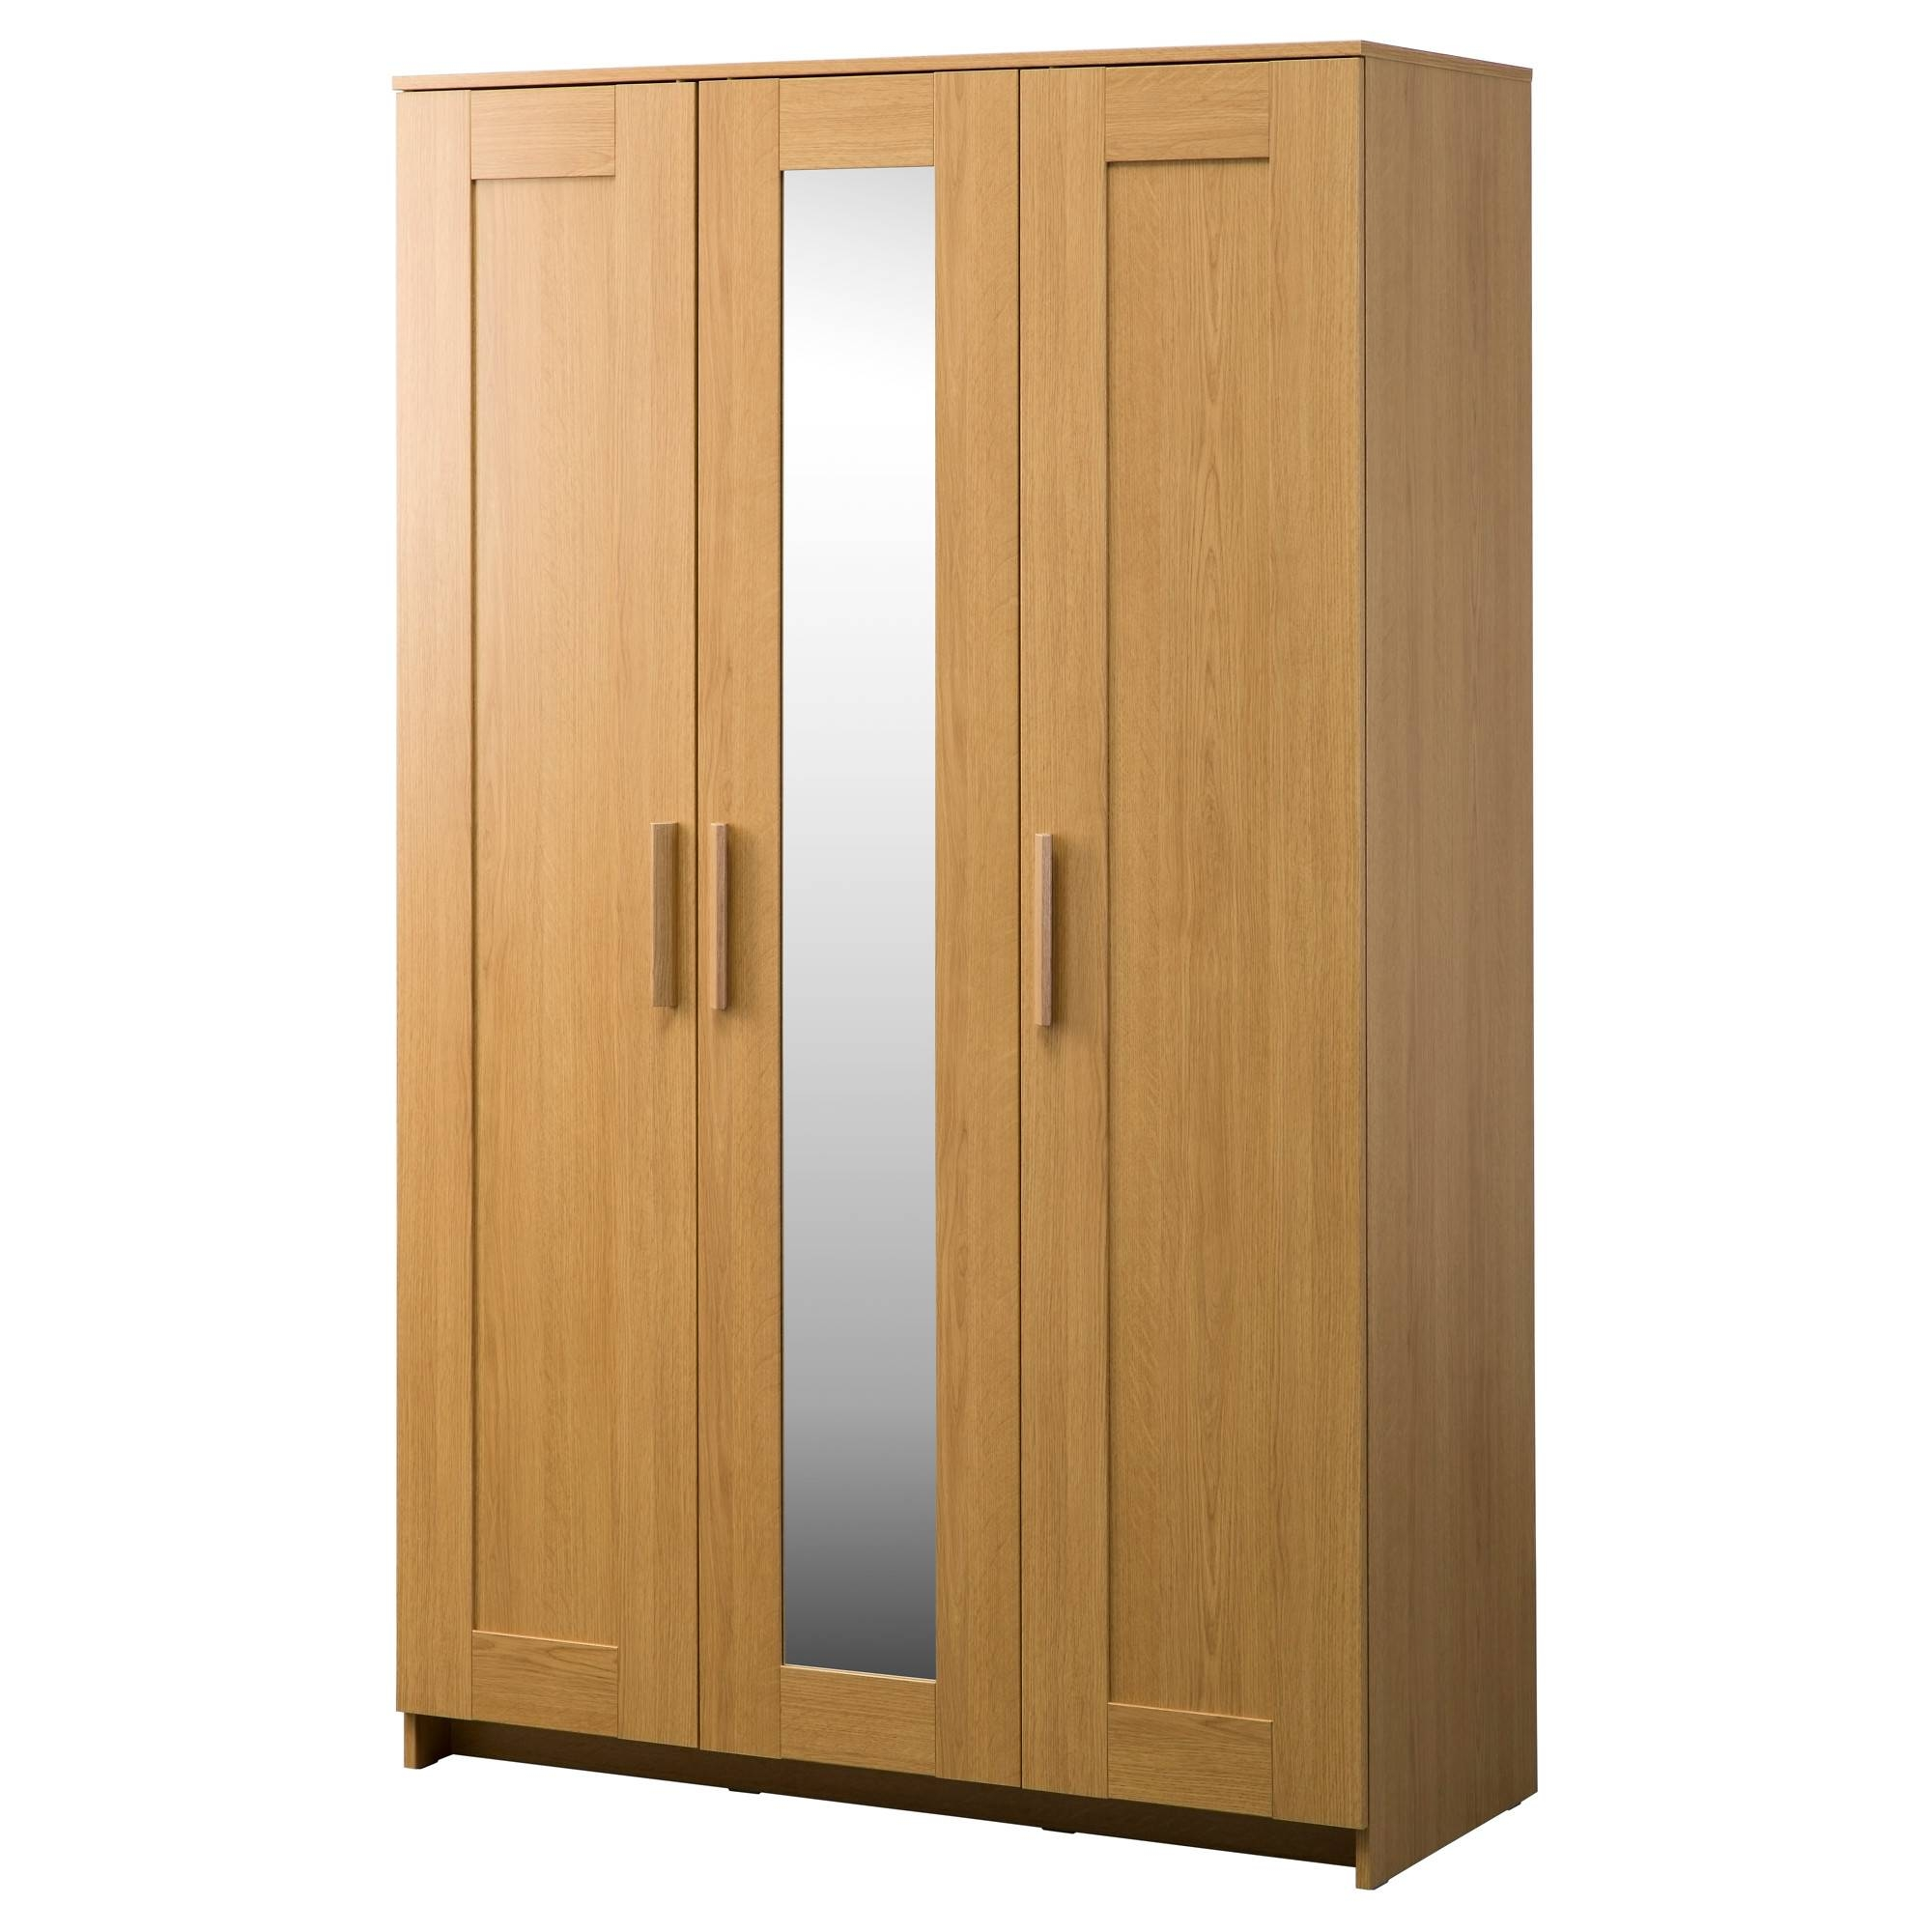 Wardrobes | Ikea for Single Wardrobe With Drawers And Shelves (Image 27 of 30)